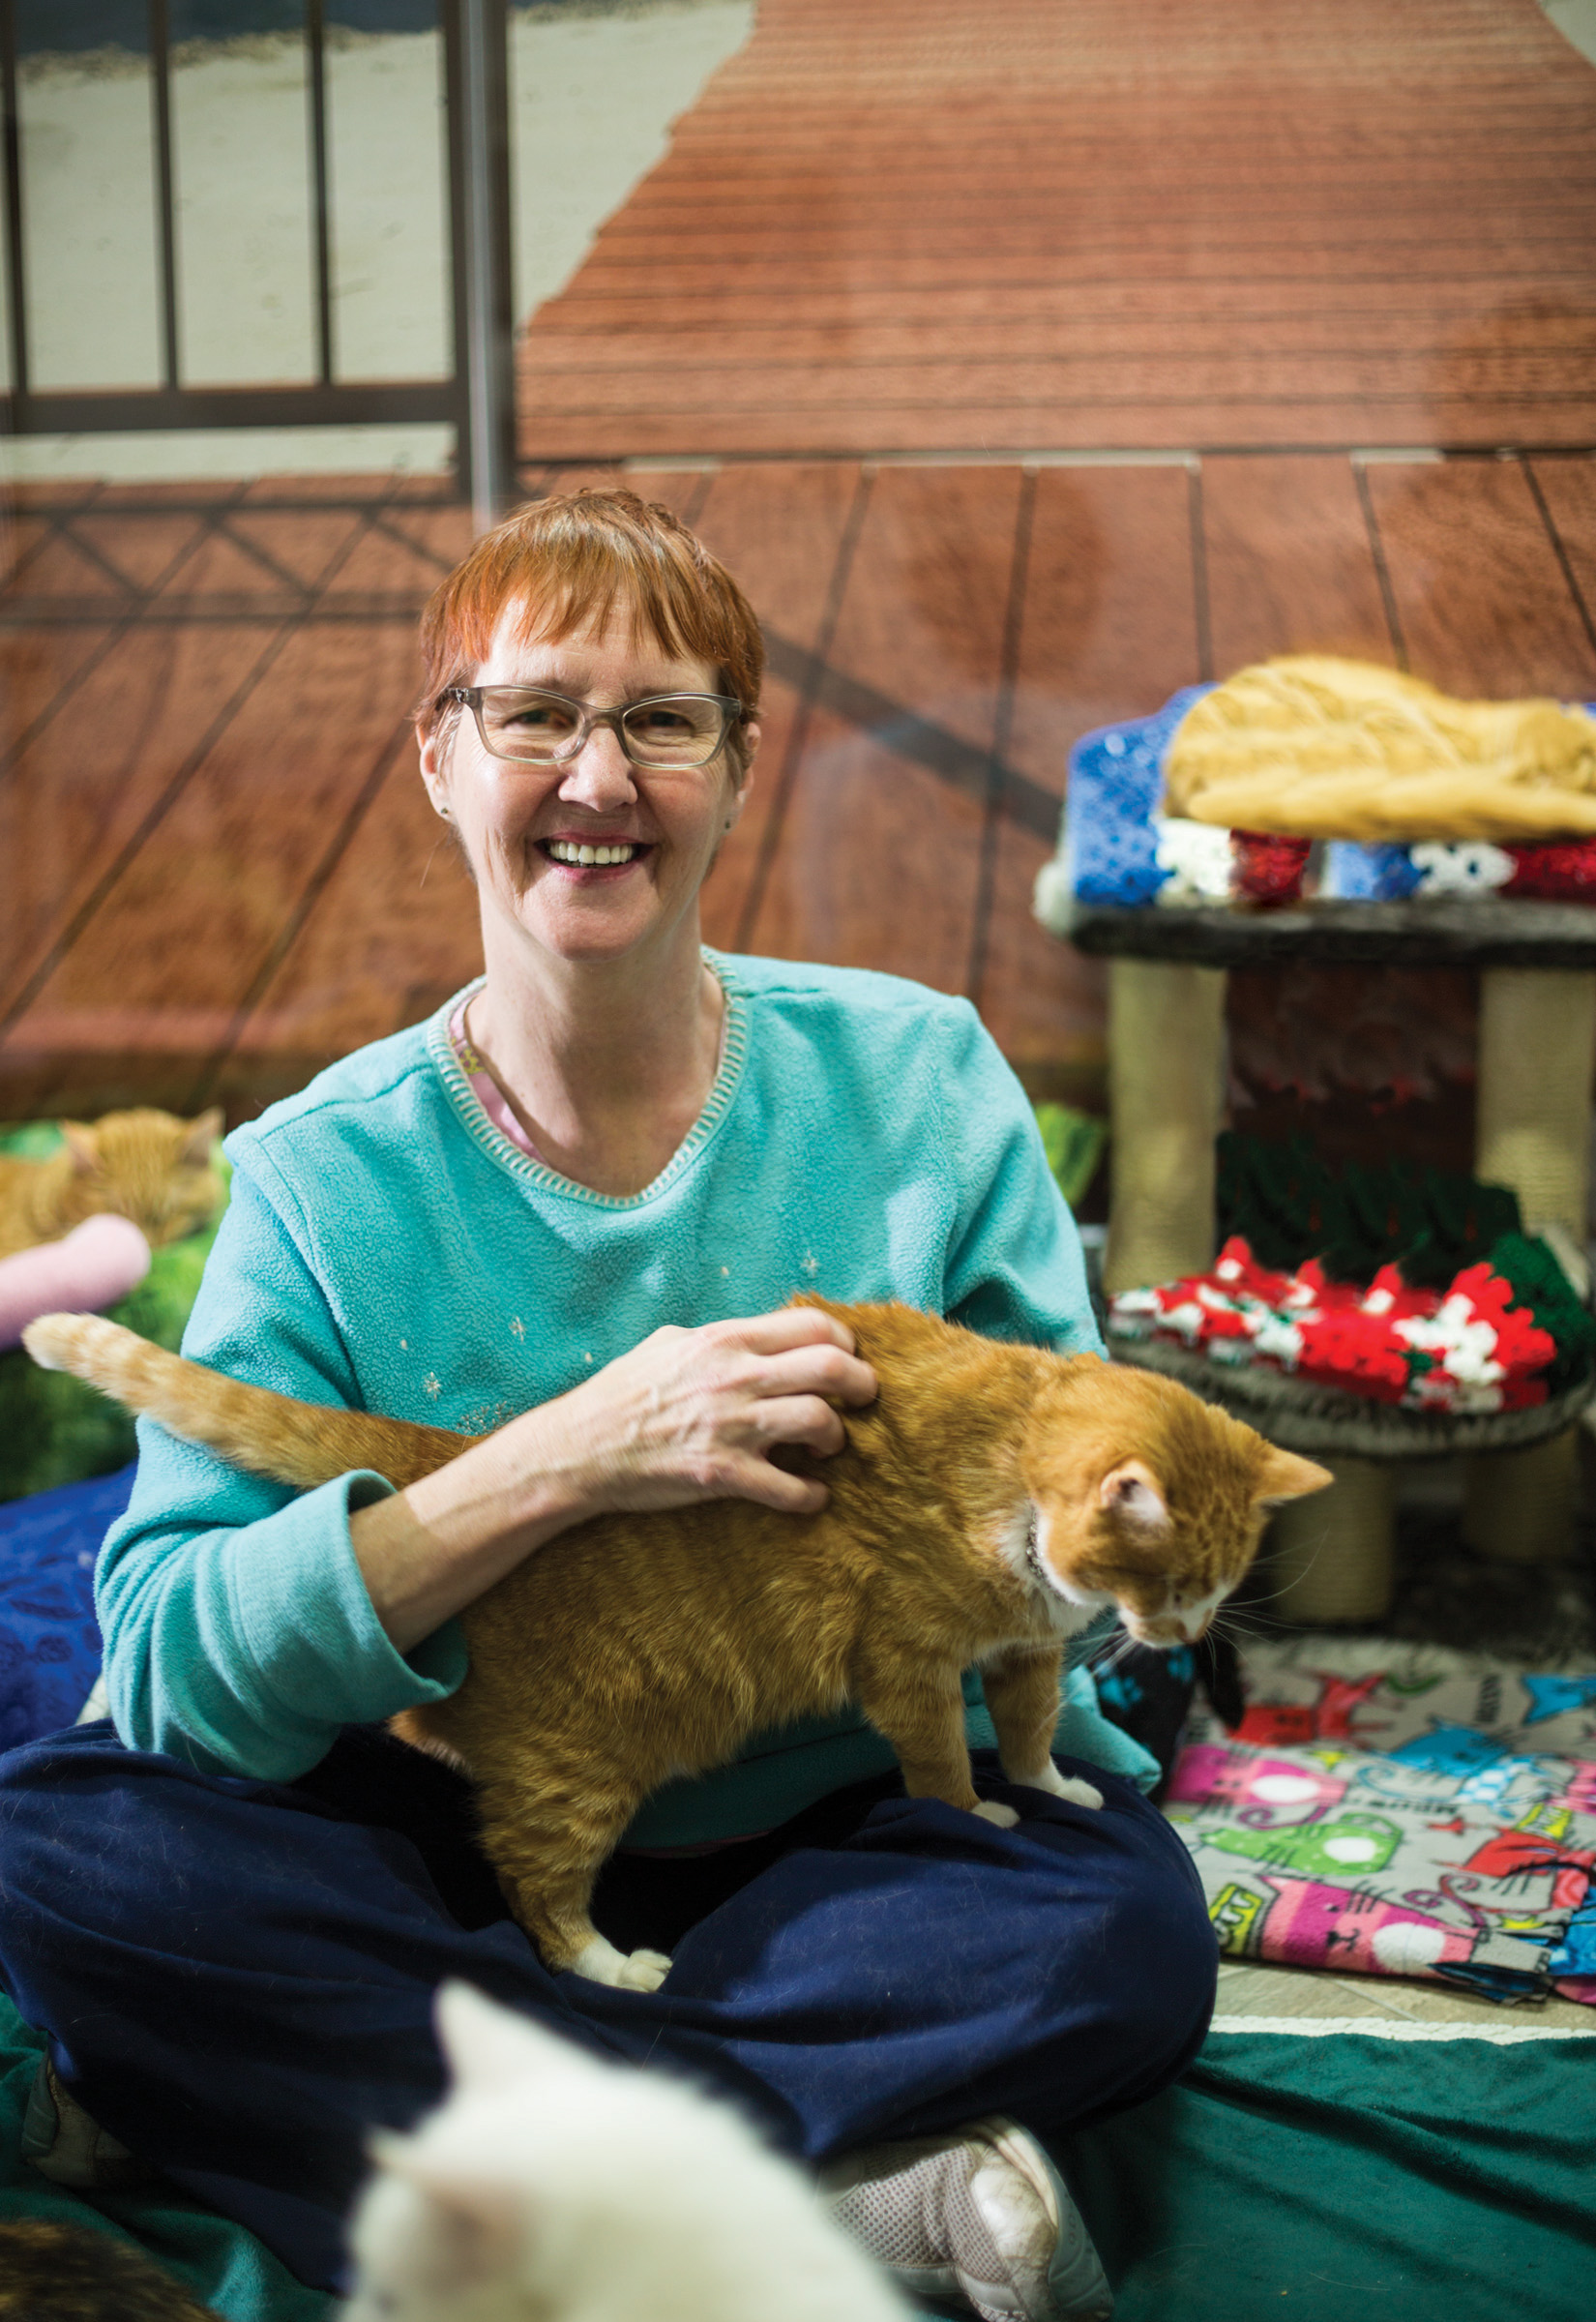 2015 Rare Life Award Presented to Alana Miller of Blind Cat Rescue & Sanctuary